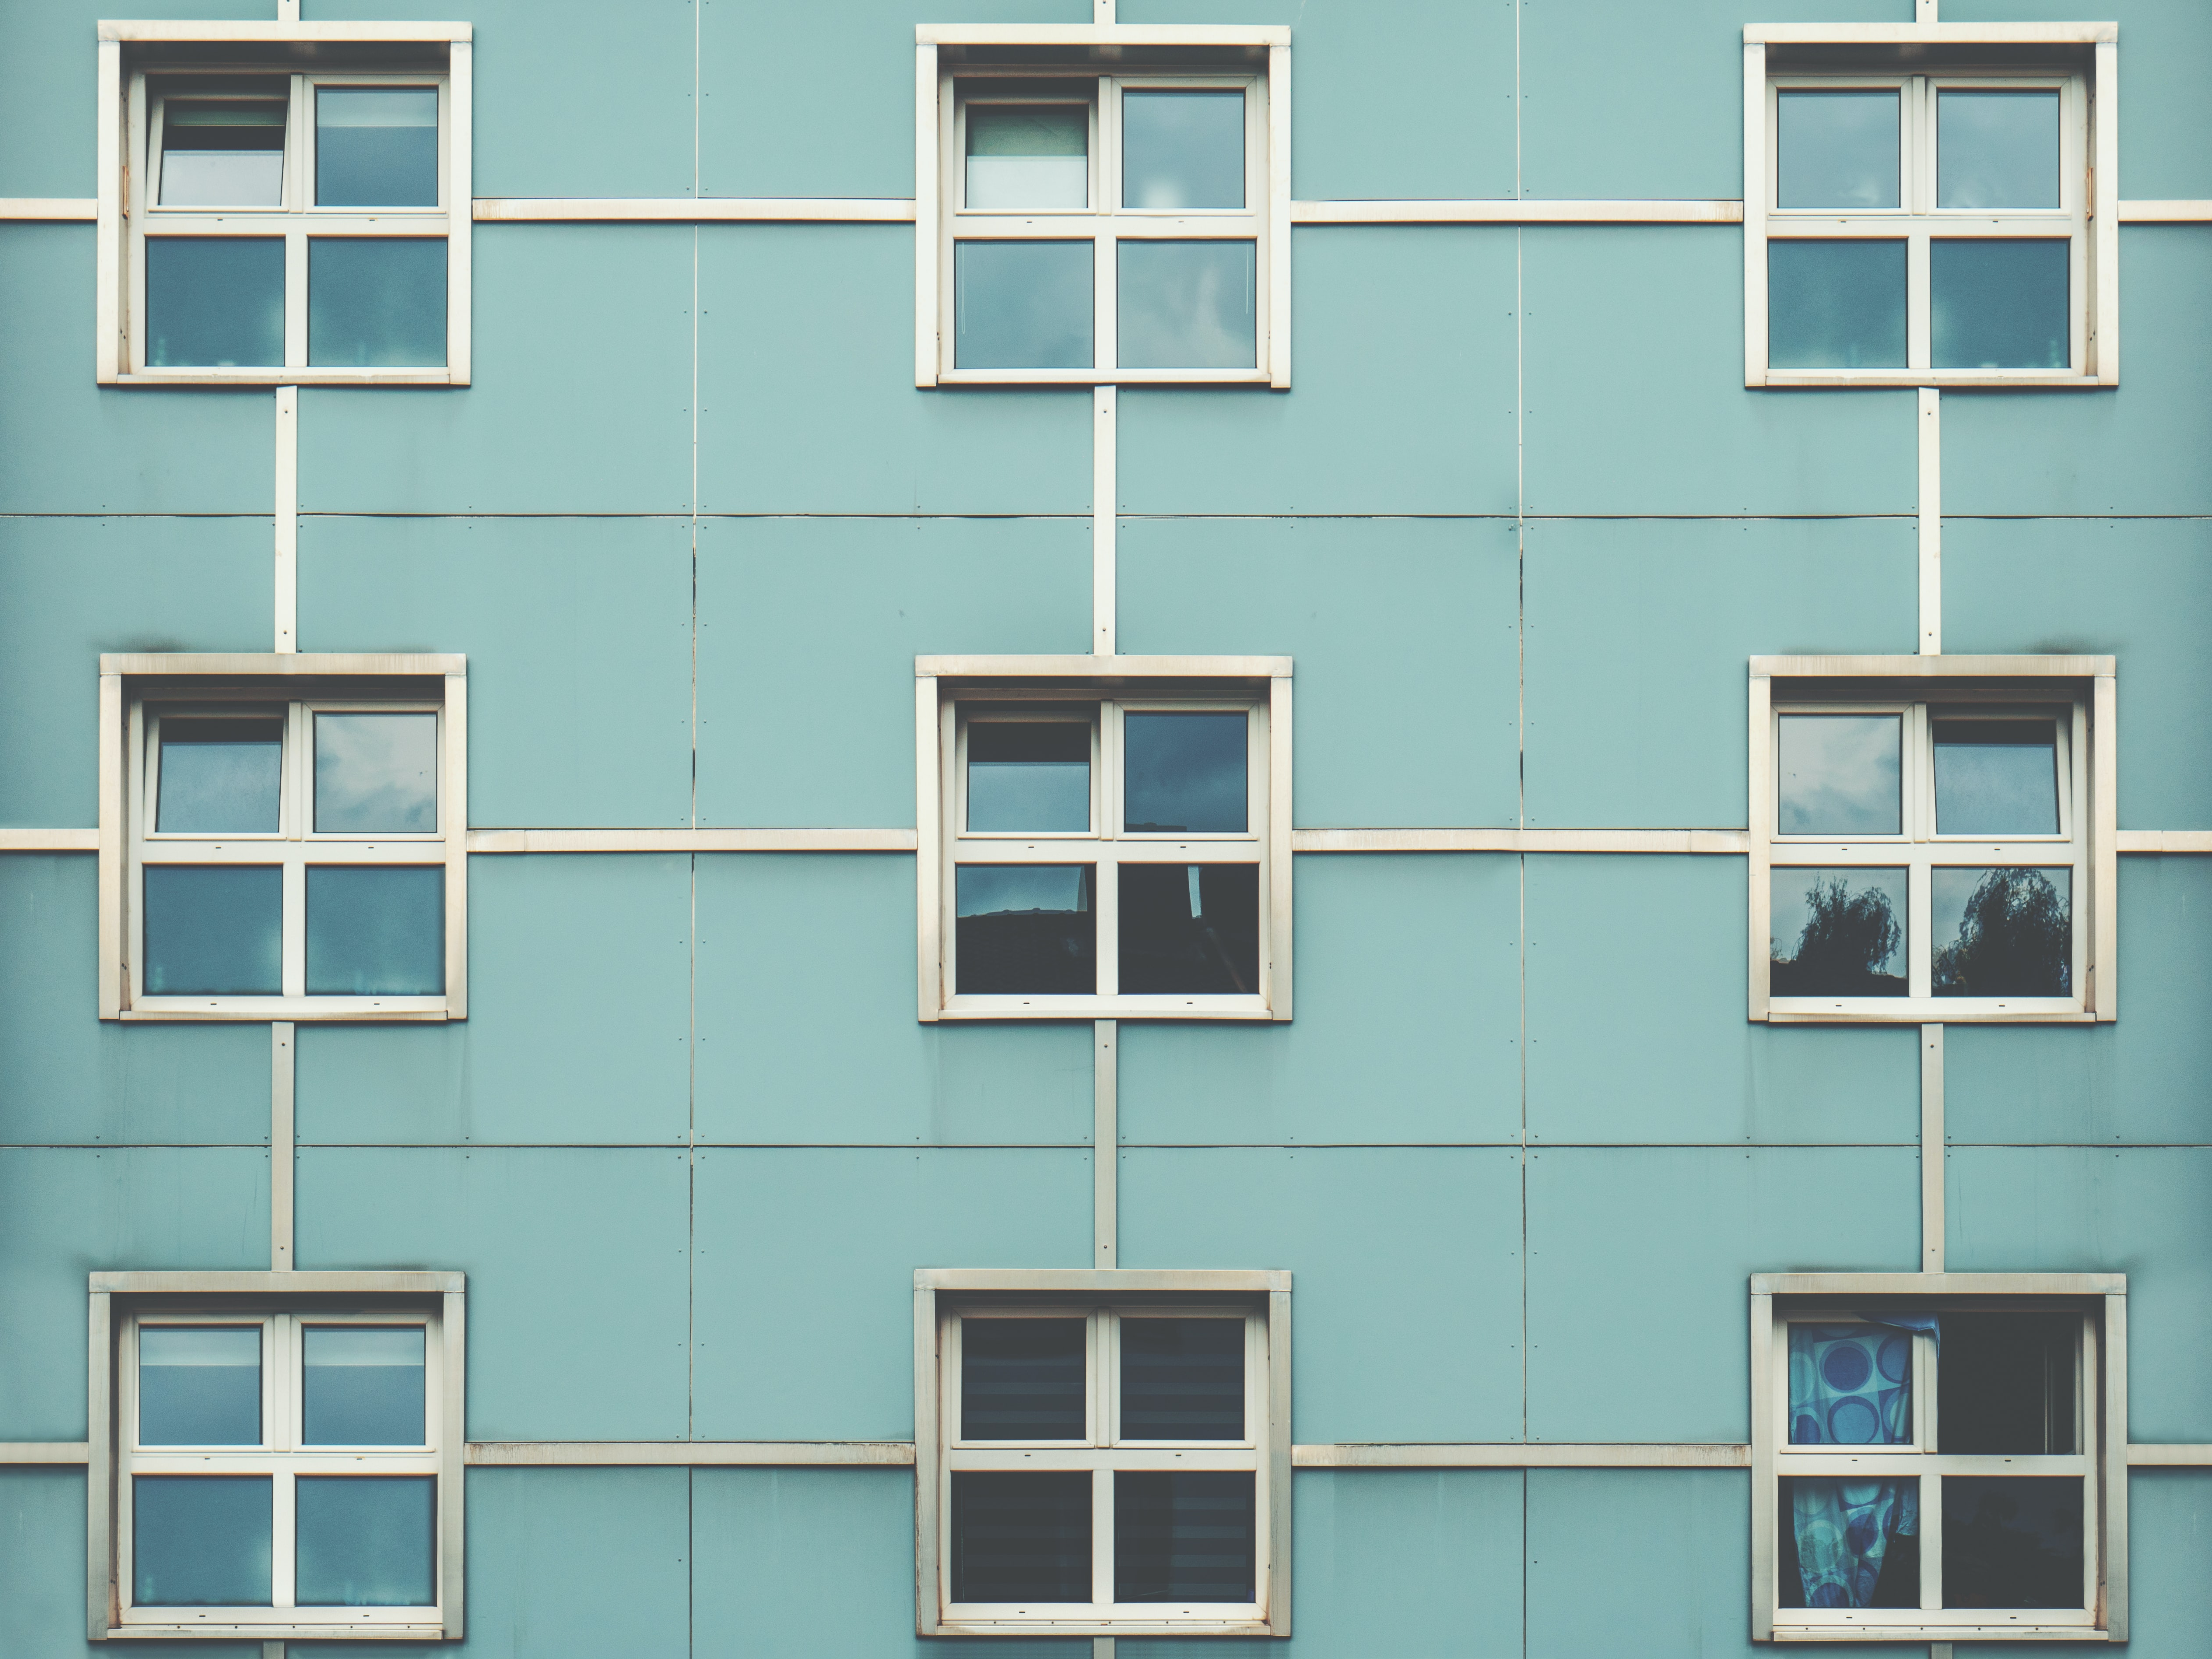 Symmetrical square windows in the blue wall of a building in Cologne.